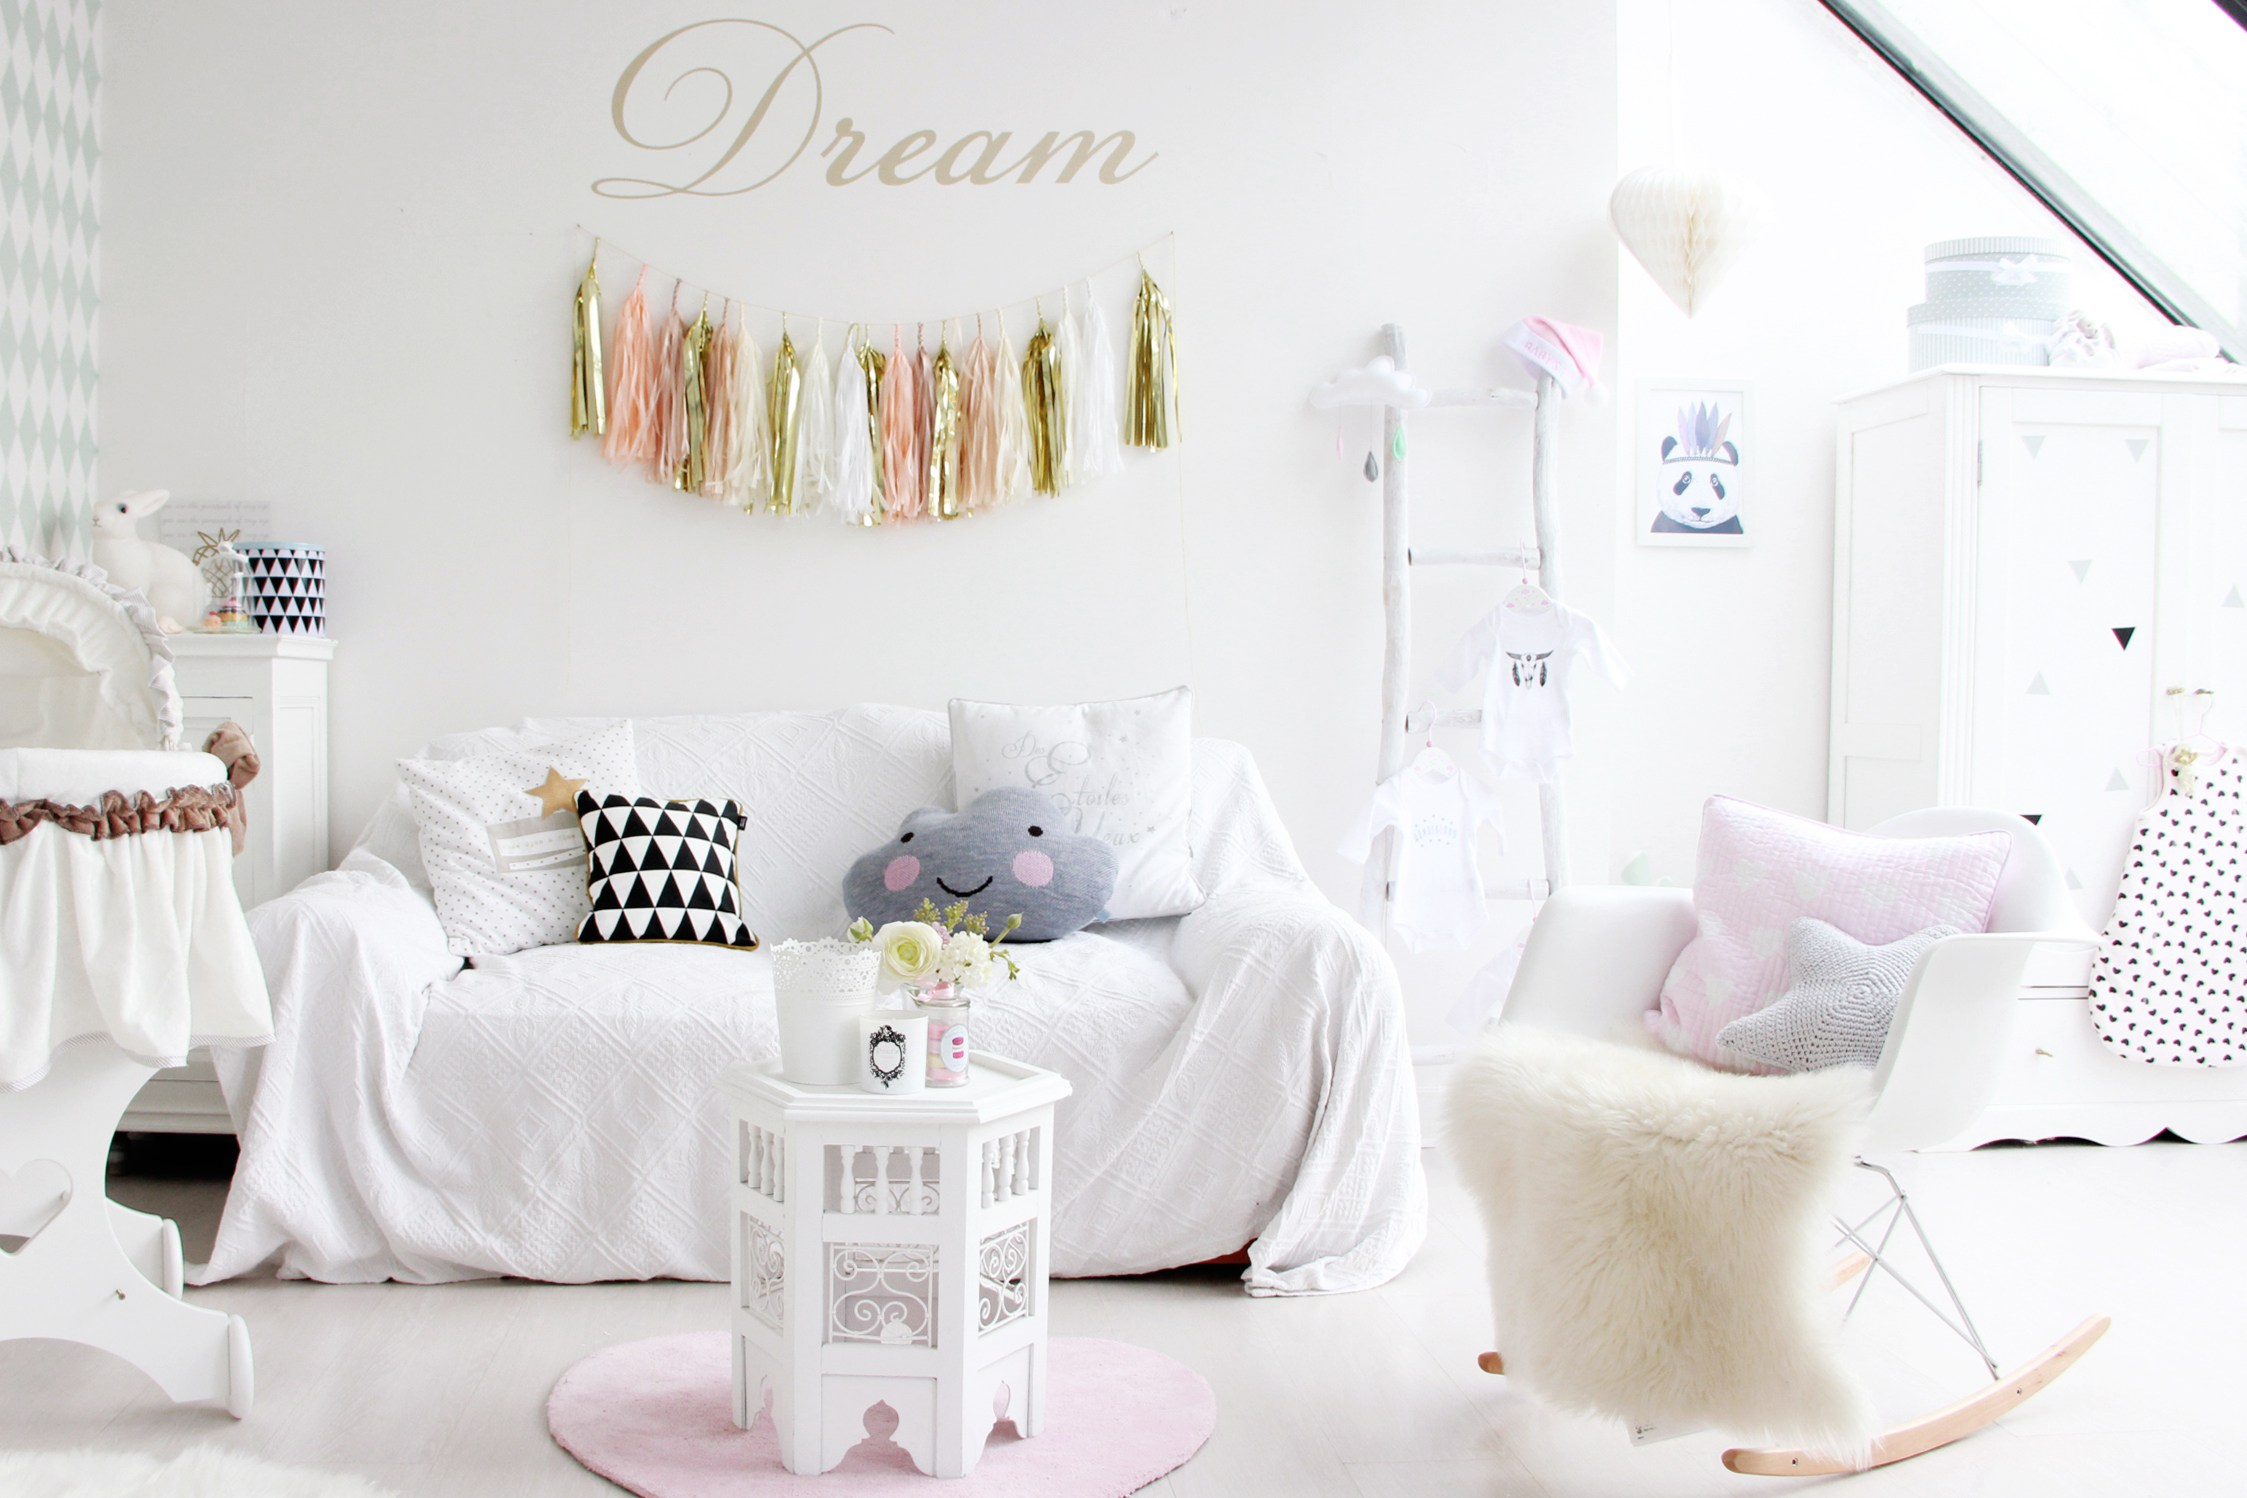 shopping mes marques pr f r es pour les petits team paillettes. Black Bedroom Furniture Sets. Home Design Ideas